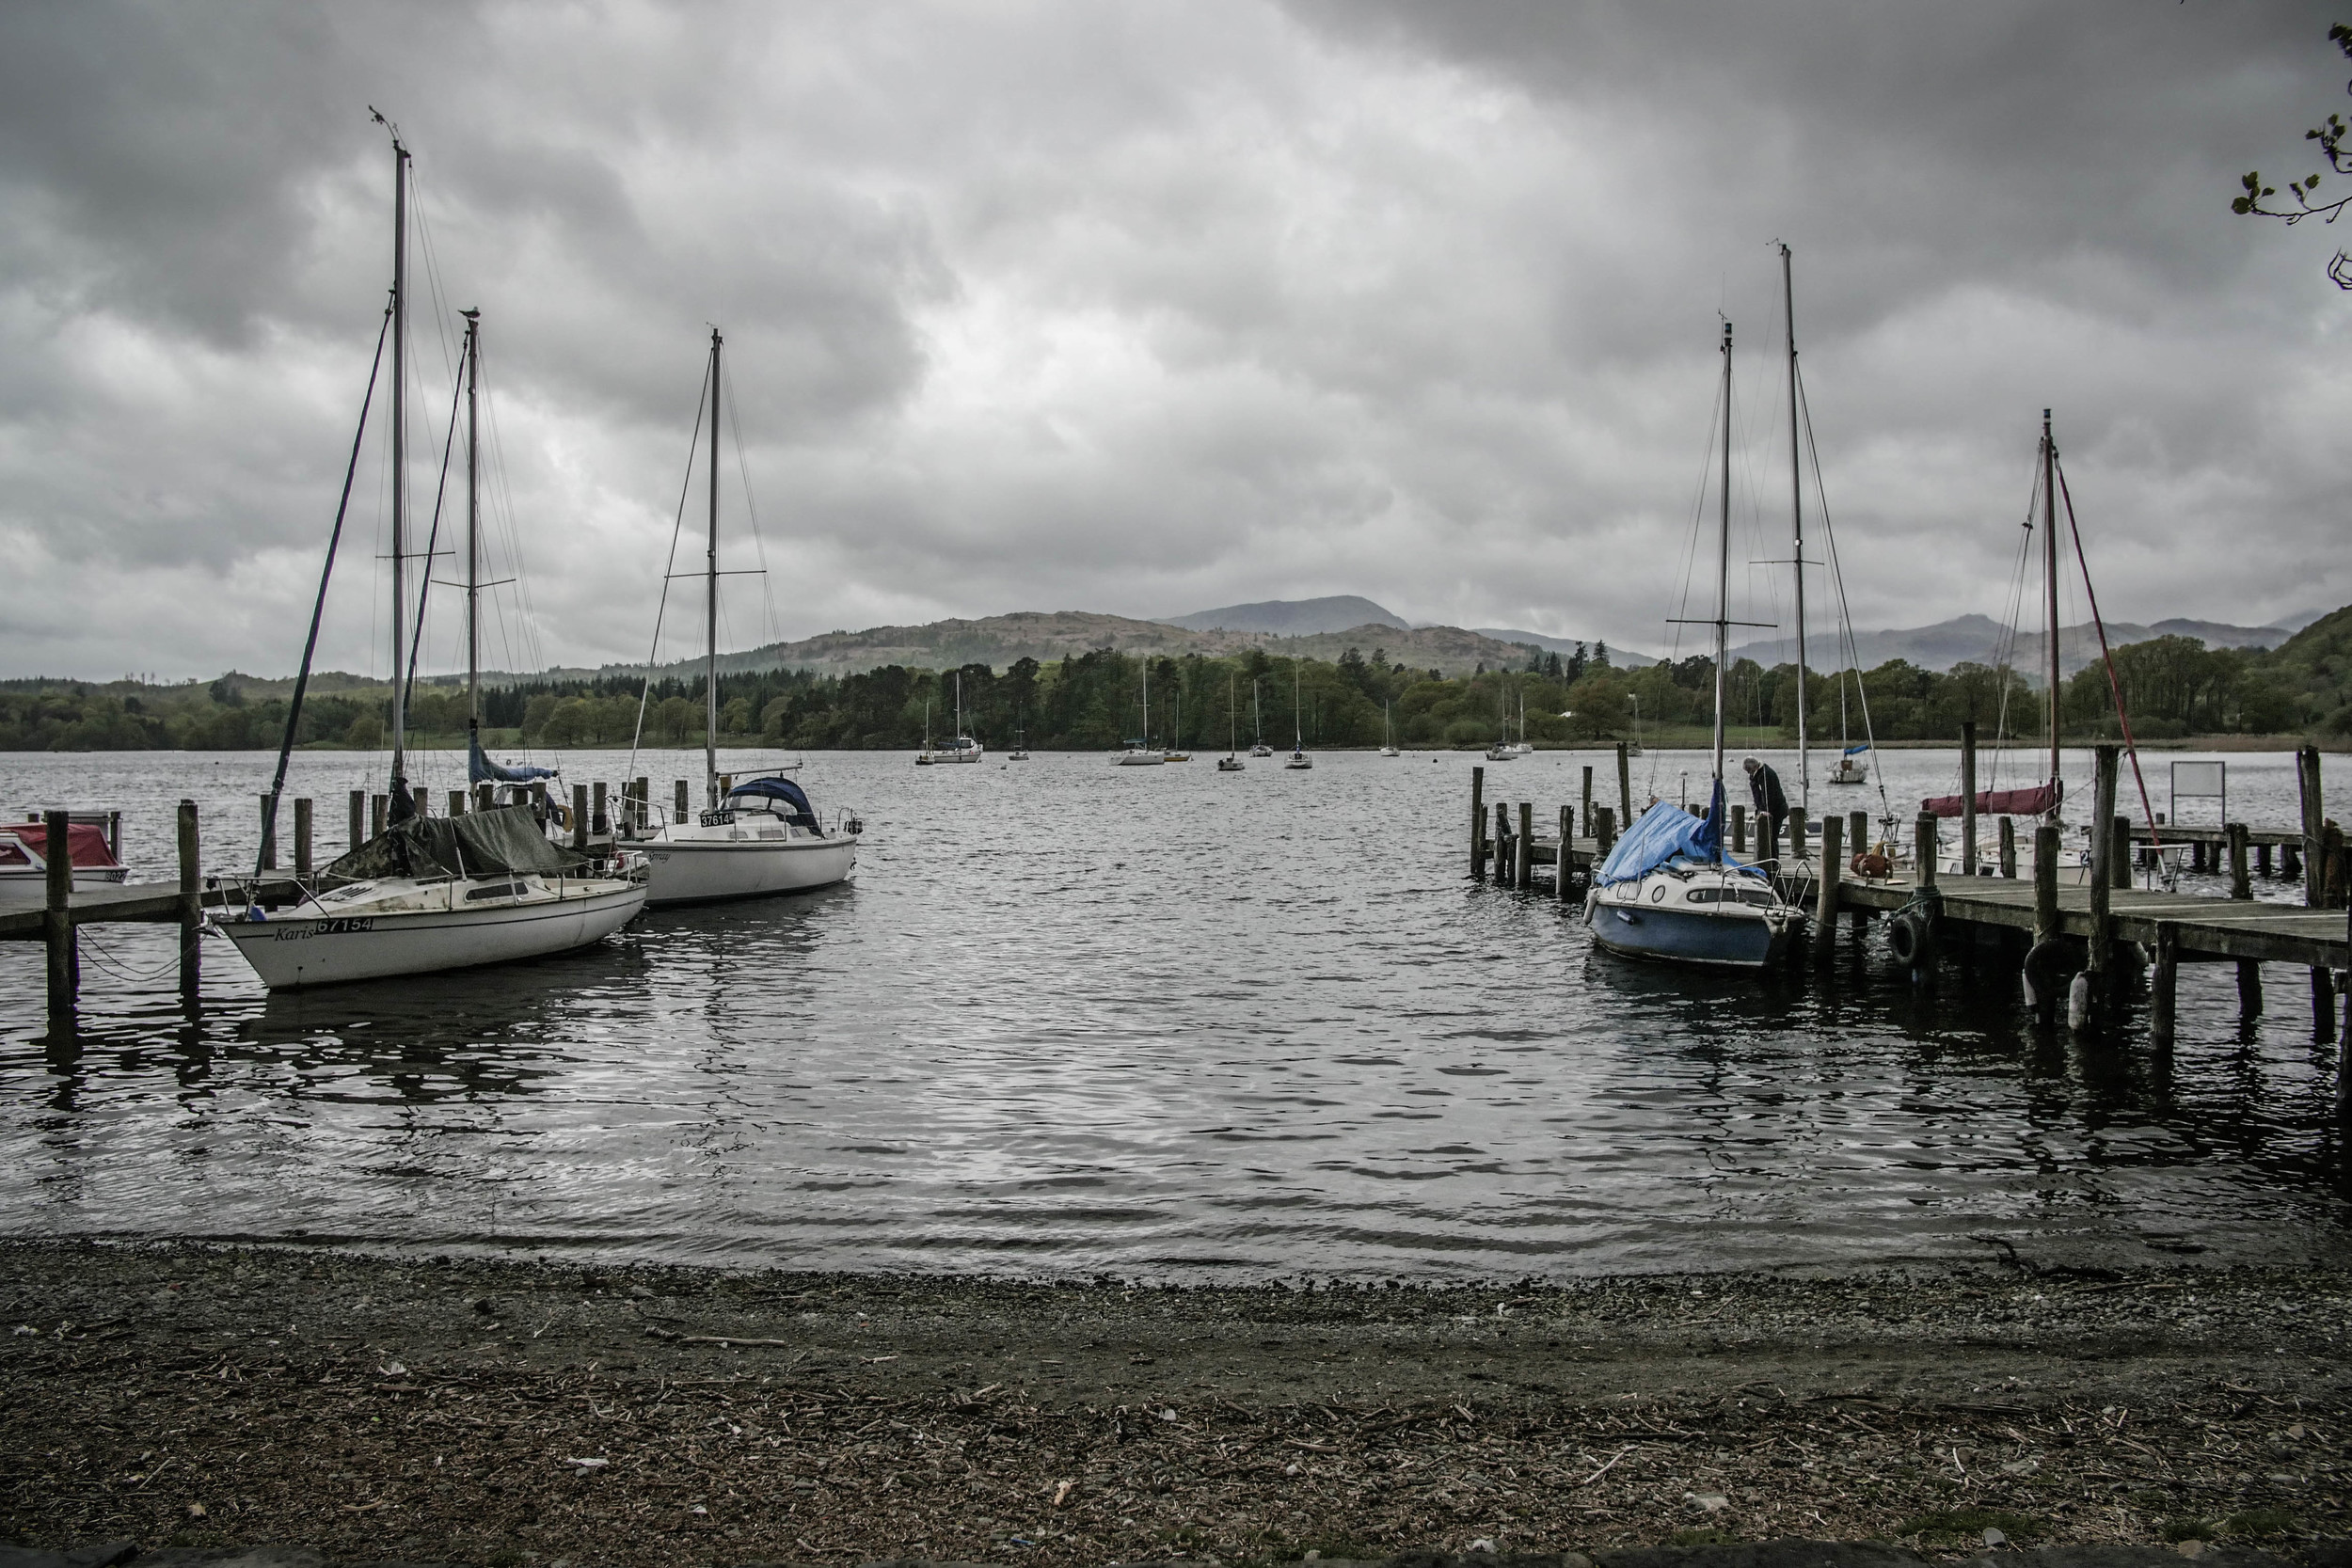 Sailing boats in Ambleside